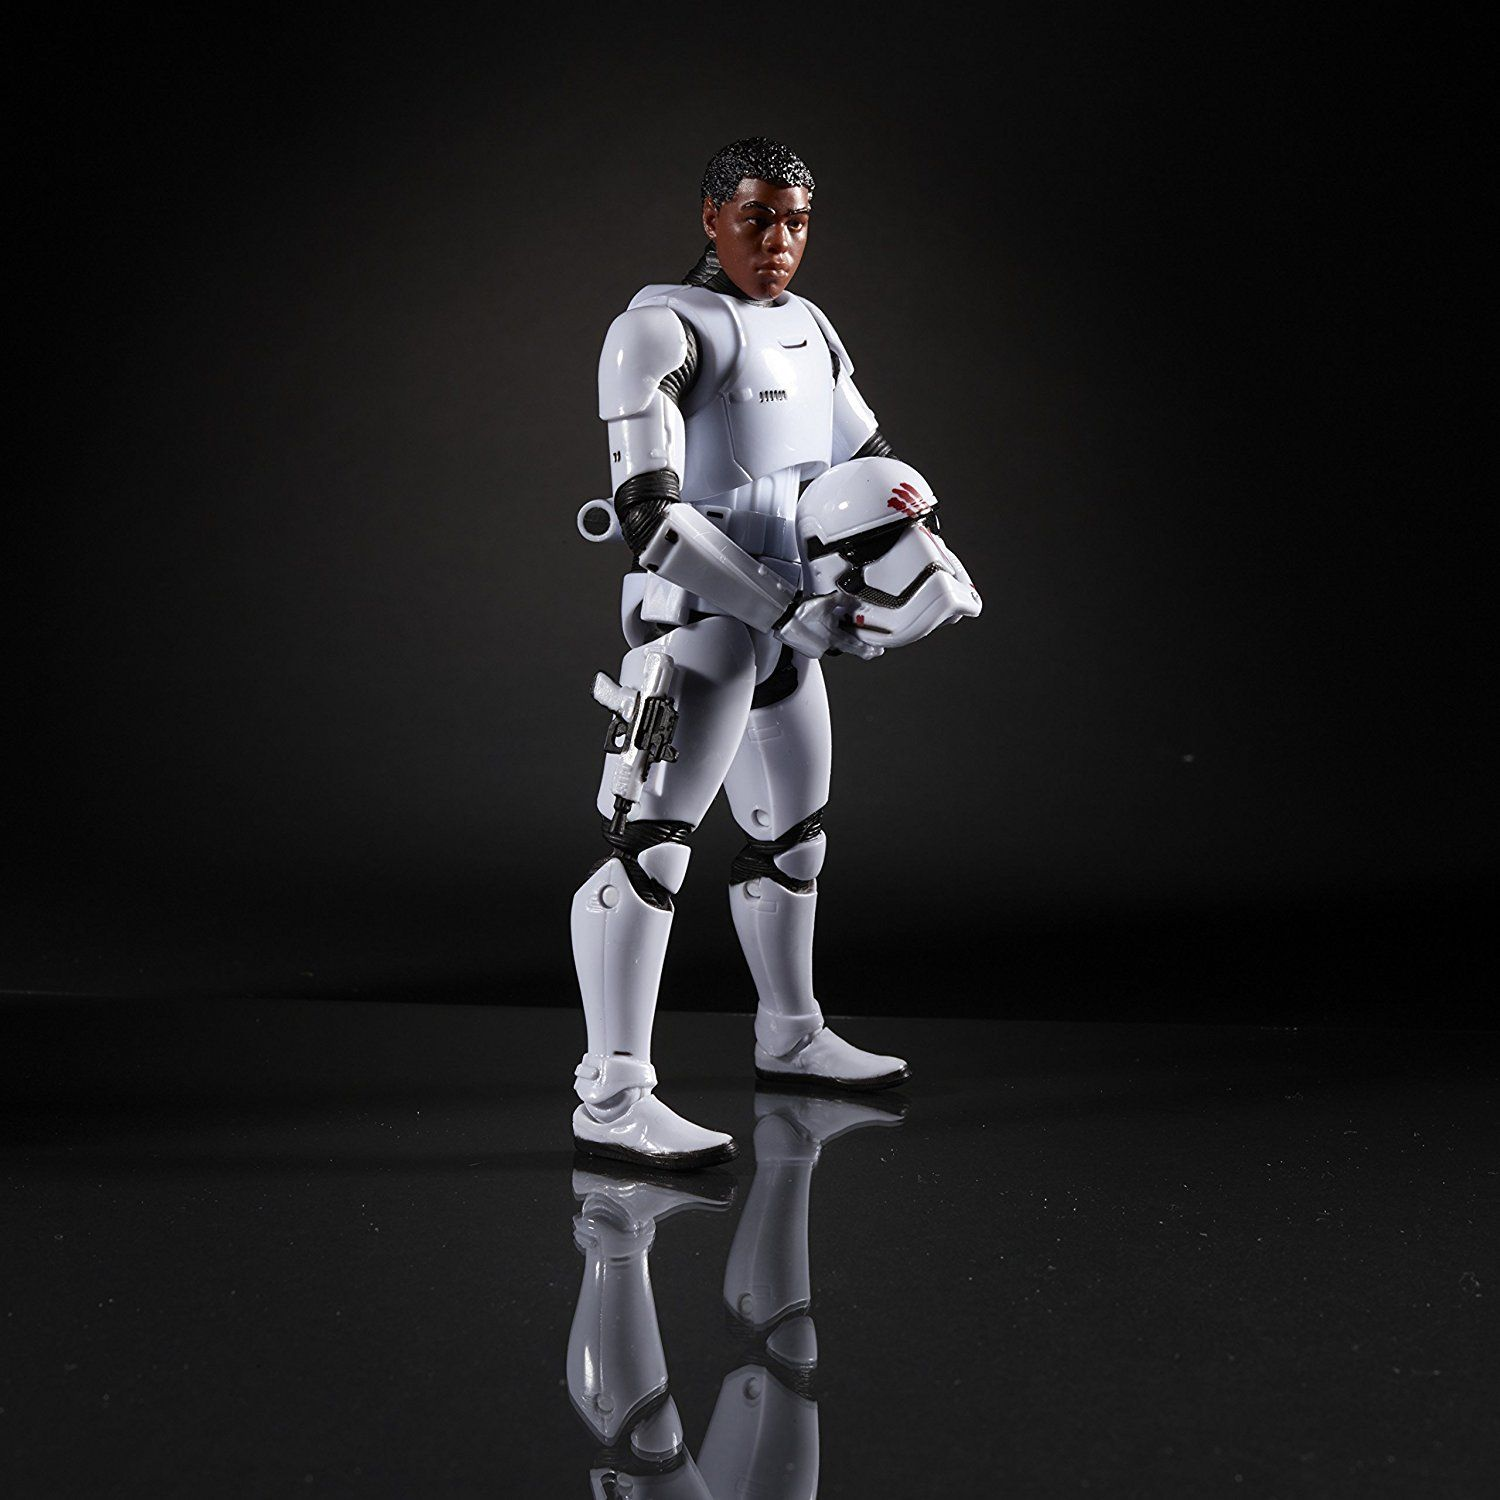 Finn FN-2187 Star Wars The Black Series - Hasbro